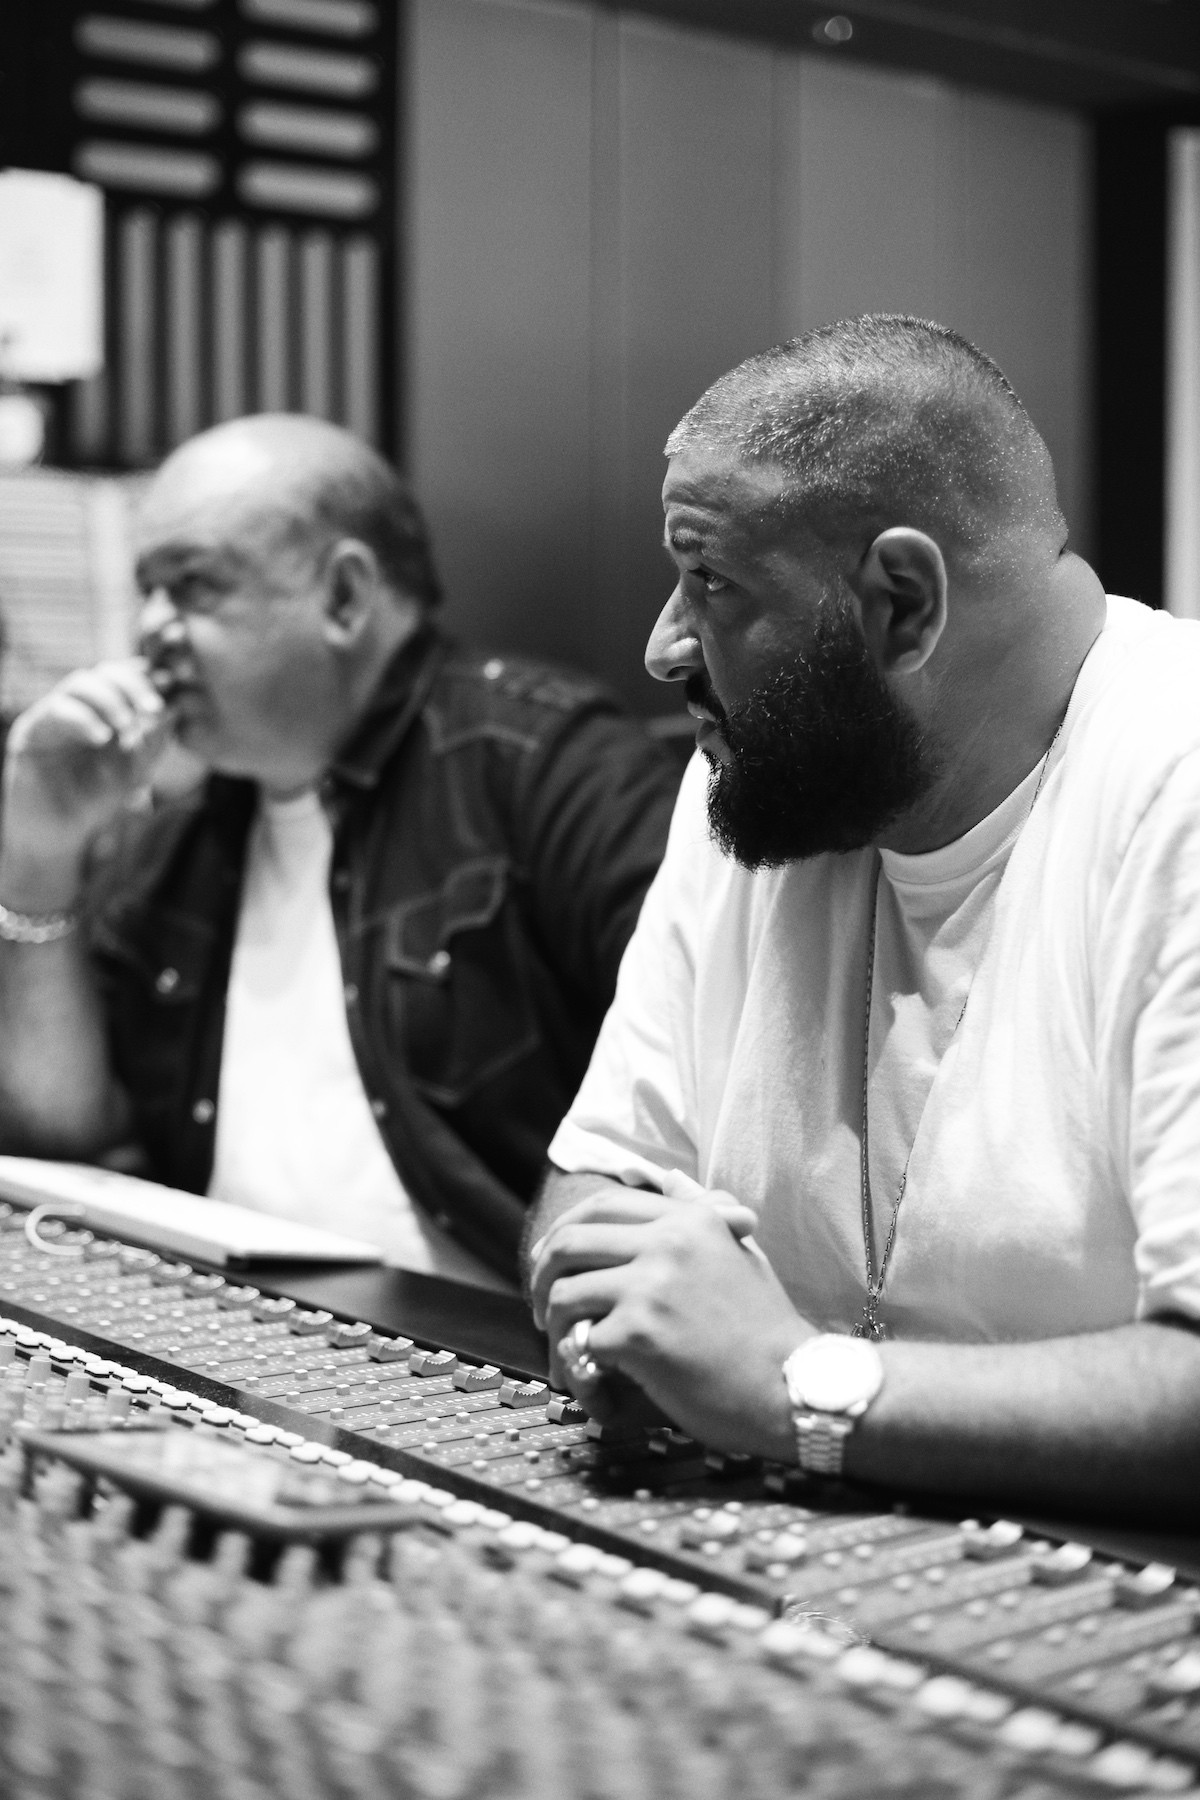 Lu Diaz and DJ Khaled Mixing Major Key